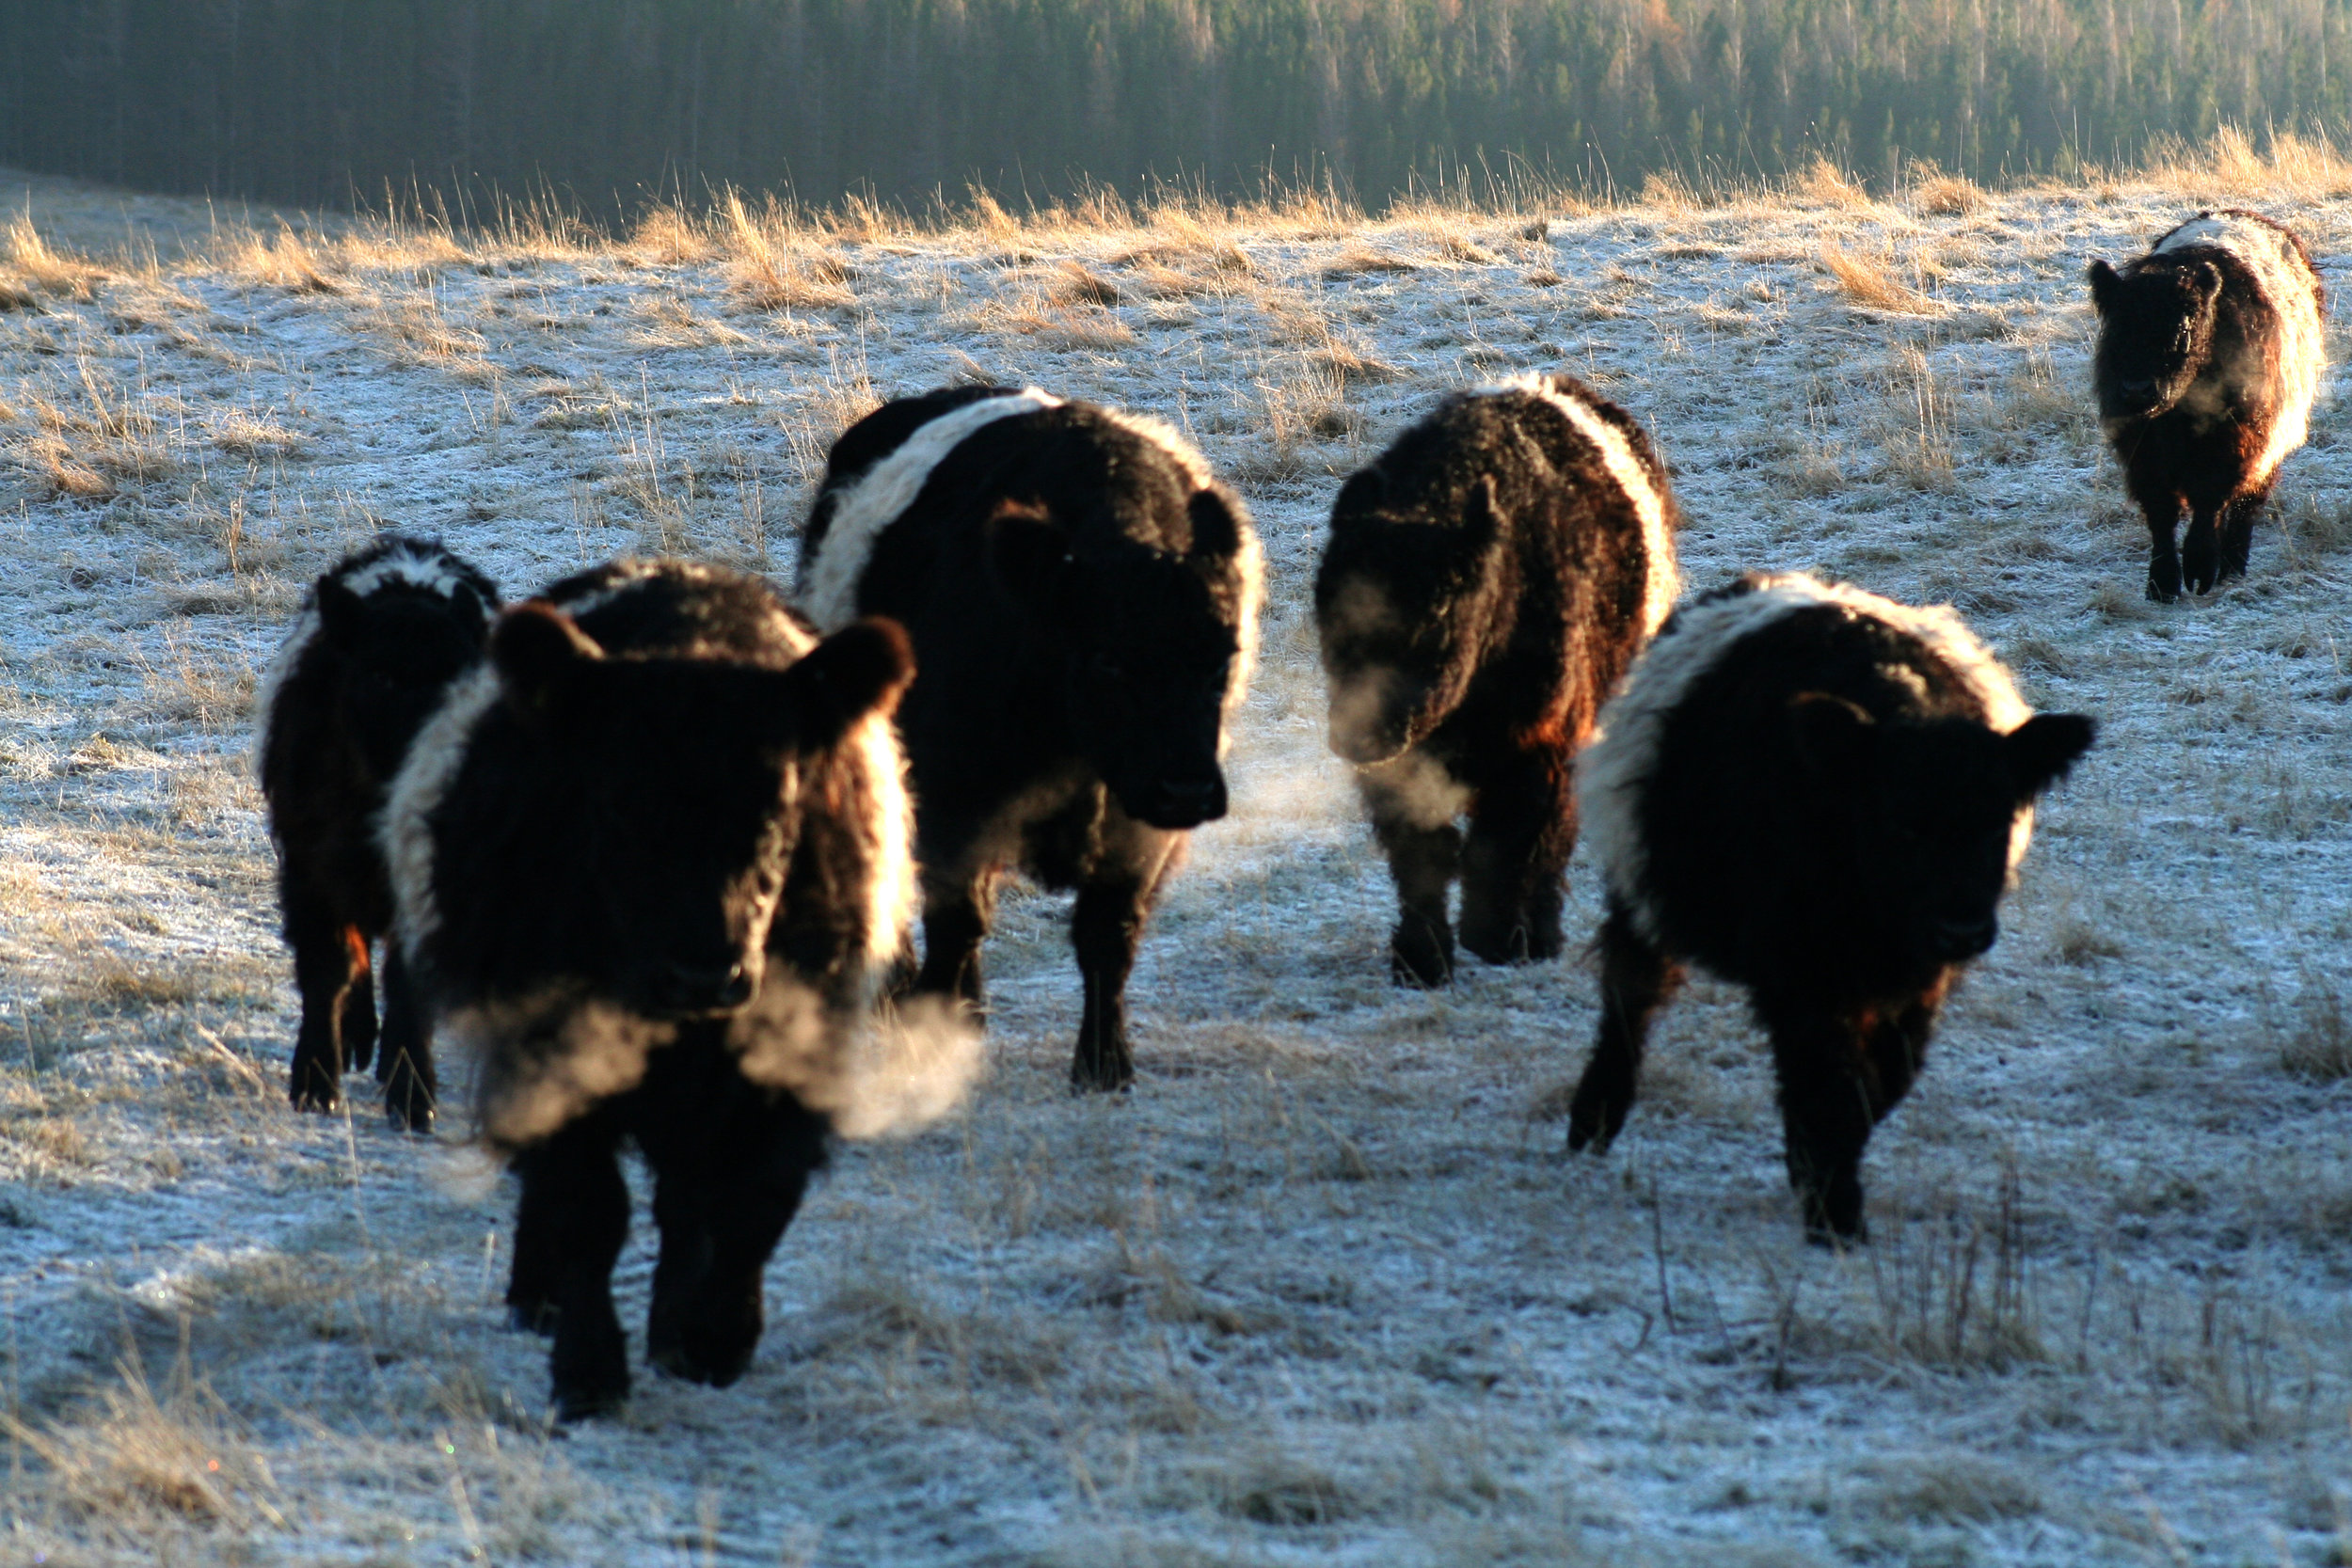 The belties are enthusiastic about a bit of extra feed